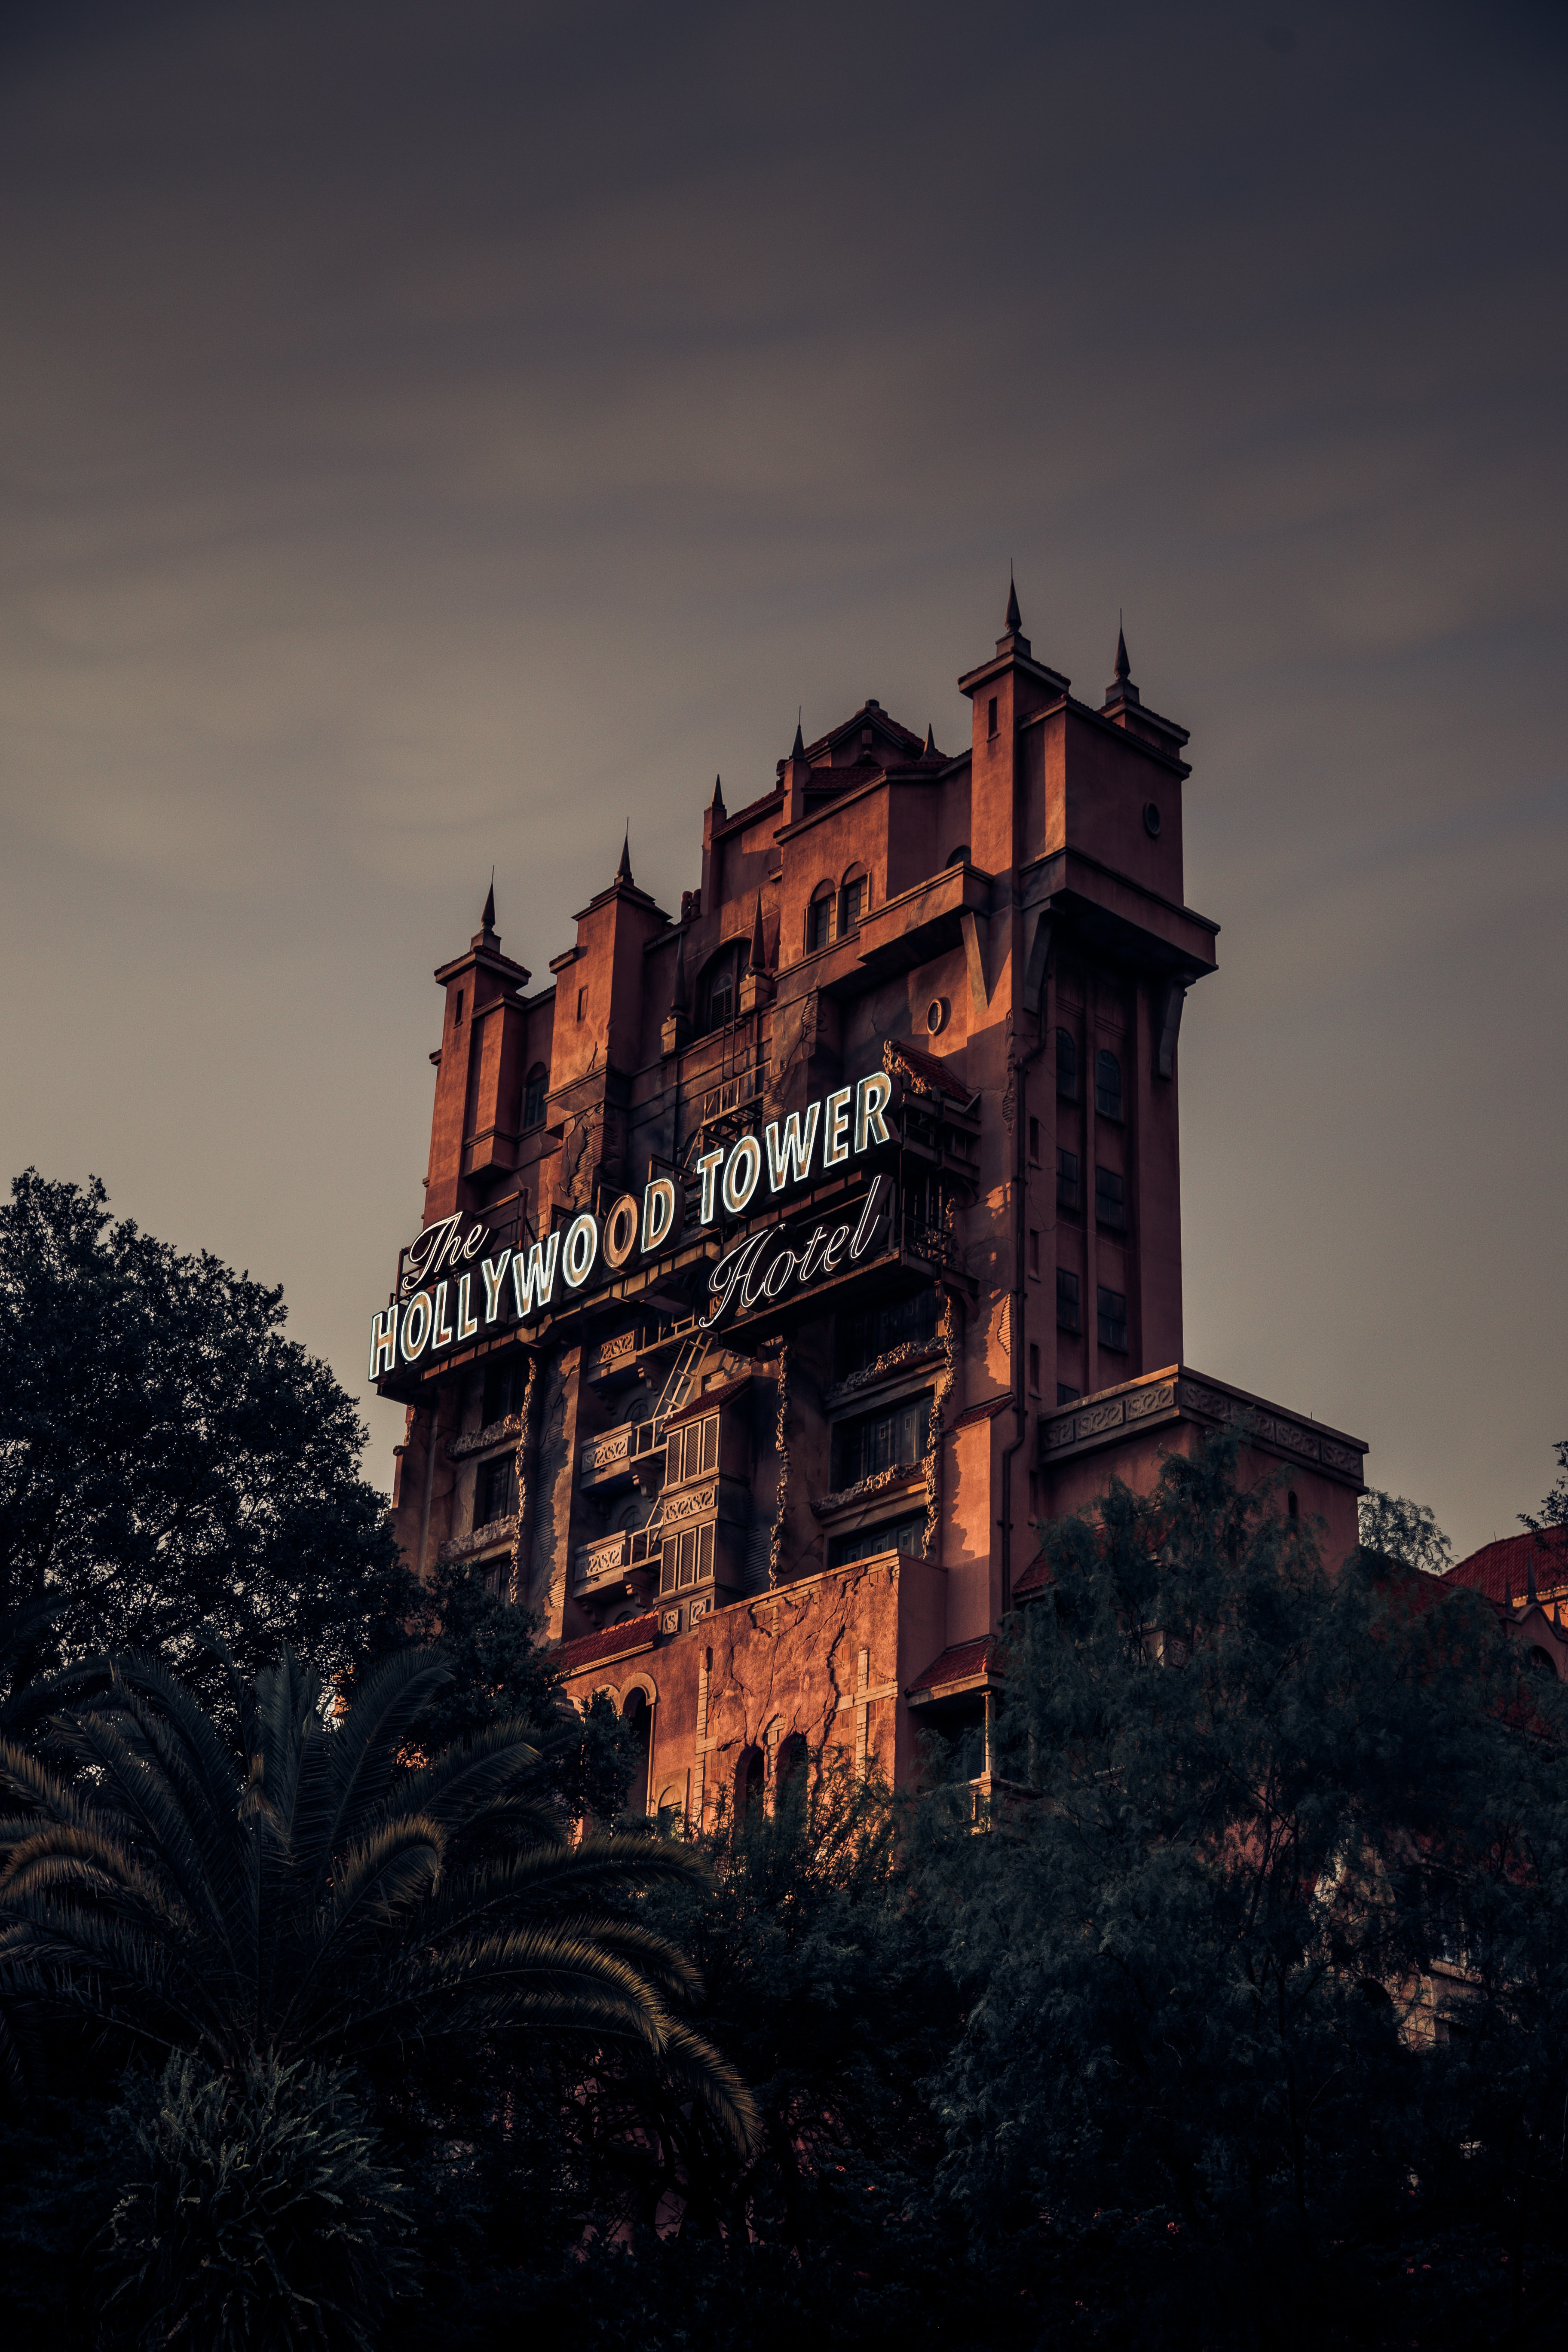 architectural photography of The Hollywood Tower Hotel